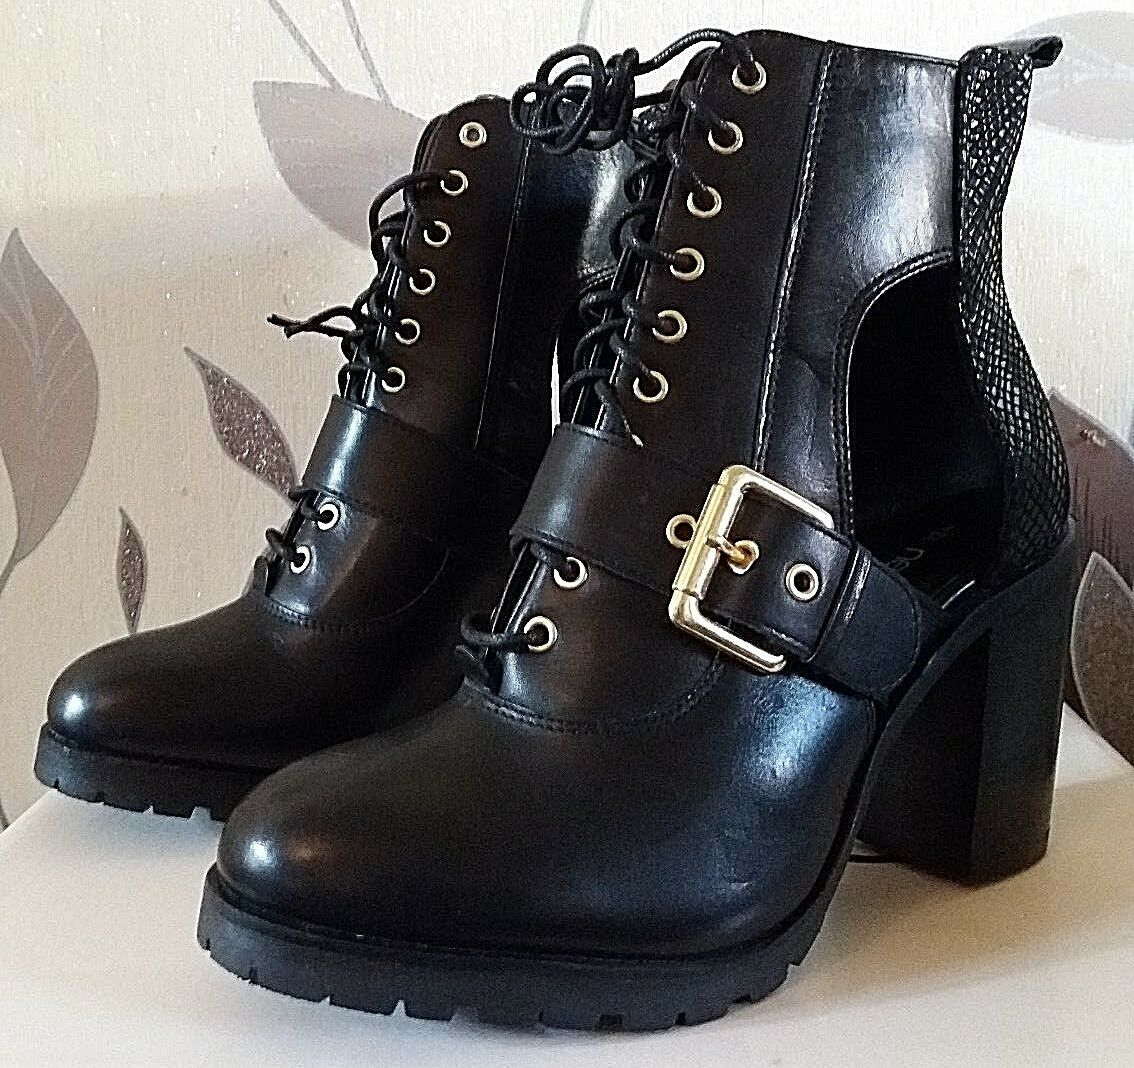 NEXT SIZE UK 7 ( EU 41) BLACK REAL LEATHER LACE UP HIGH ANKLE BOOT RRP £65.00